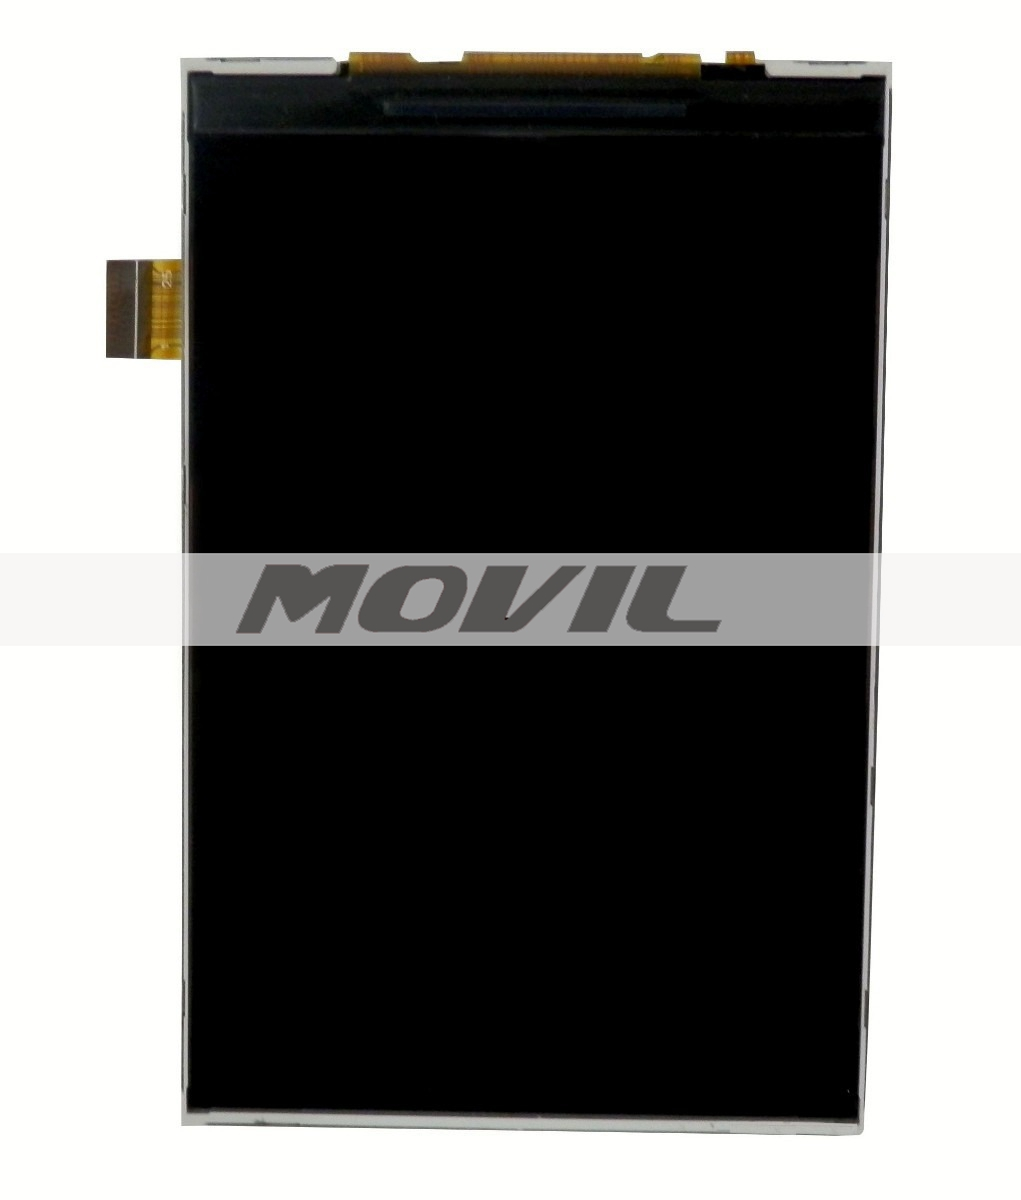 Display Alcatel T Pop 4010 4010a Lcd